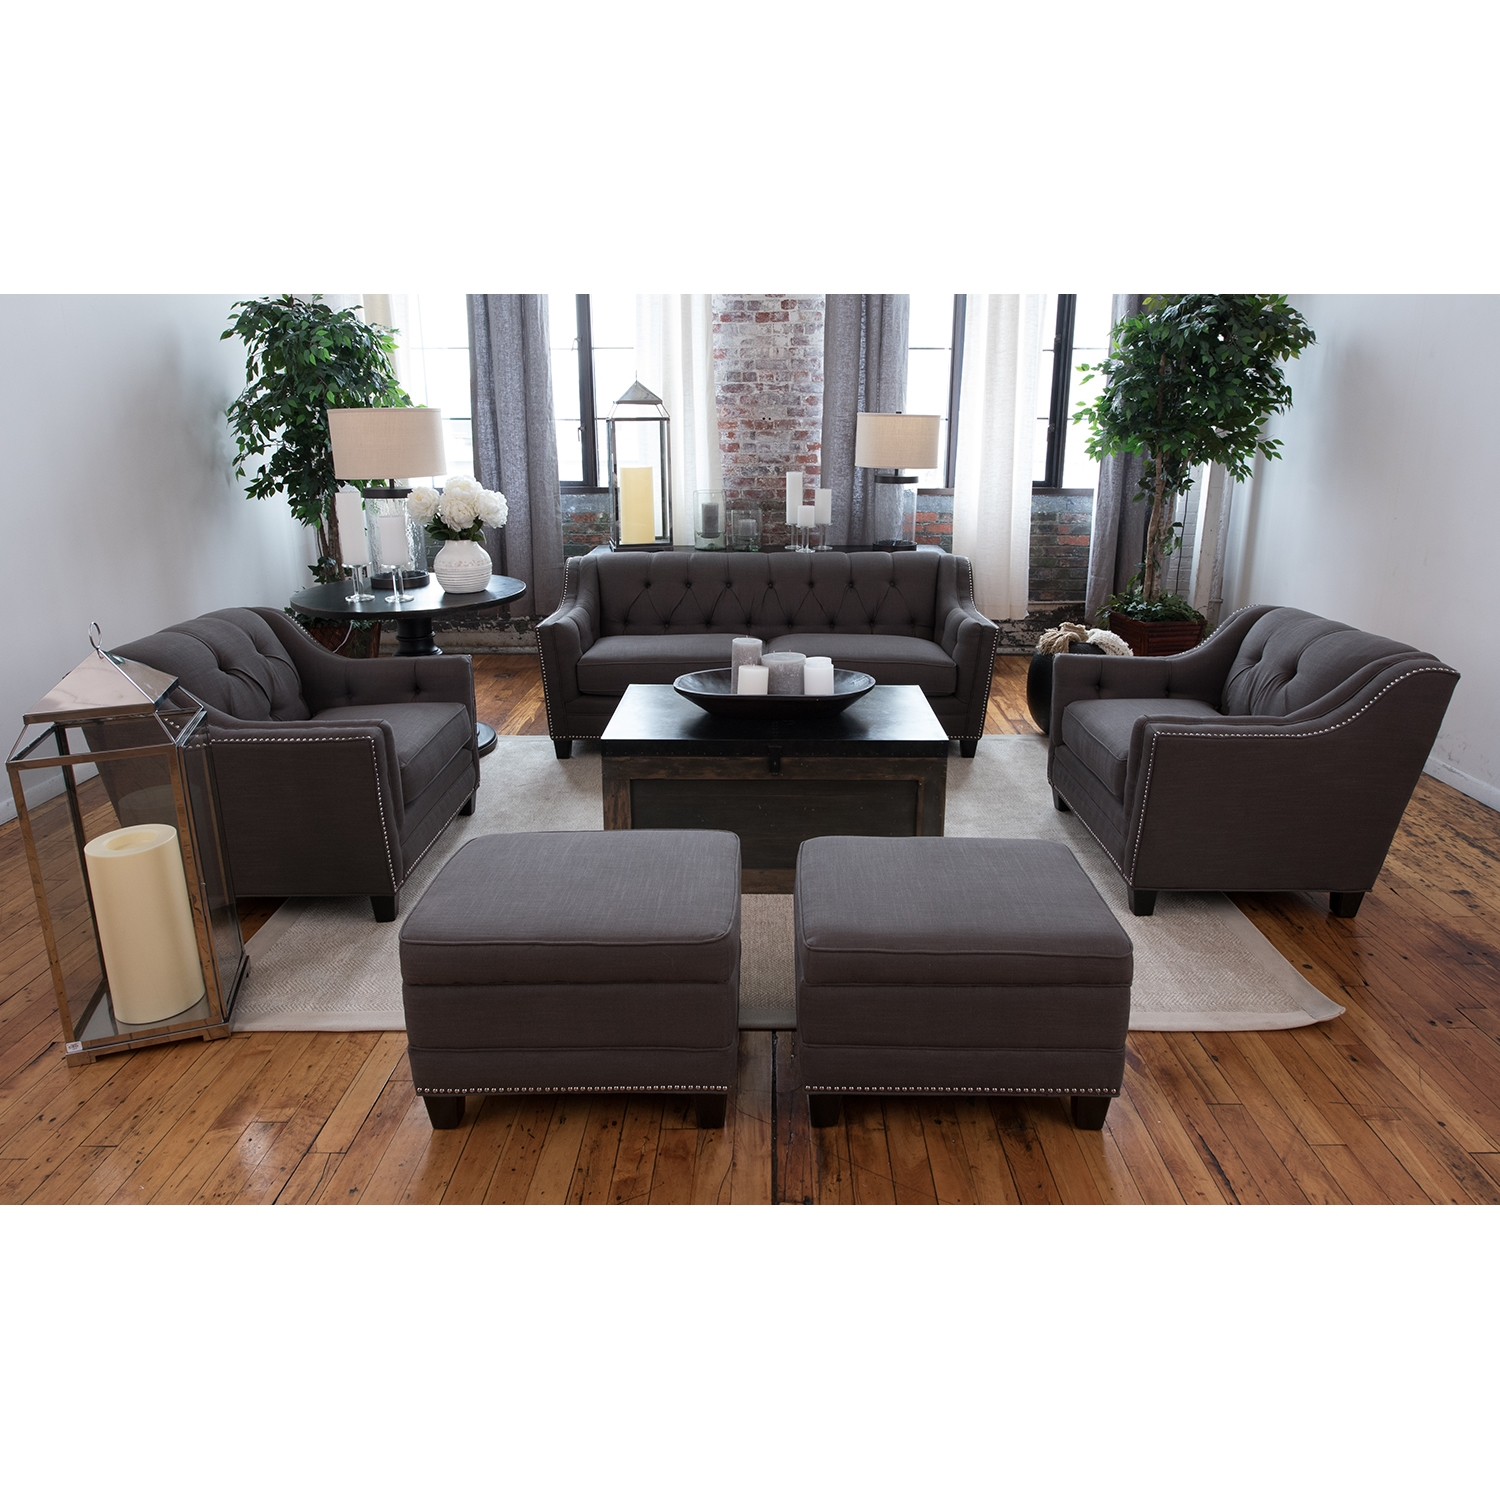 Santa Monica 5 Pieces Fabric Sofa Set - Beachwood - ELE-SAN-5PC-S-SC-SC-STO-STO-BEAC-7